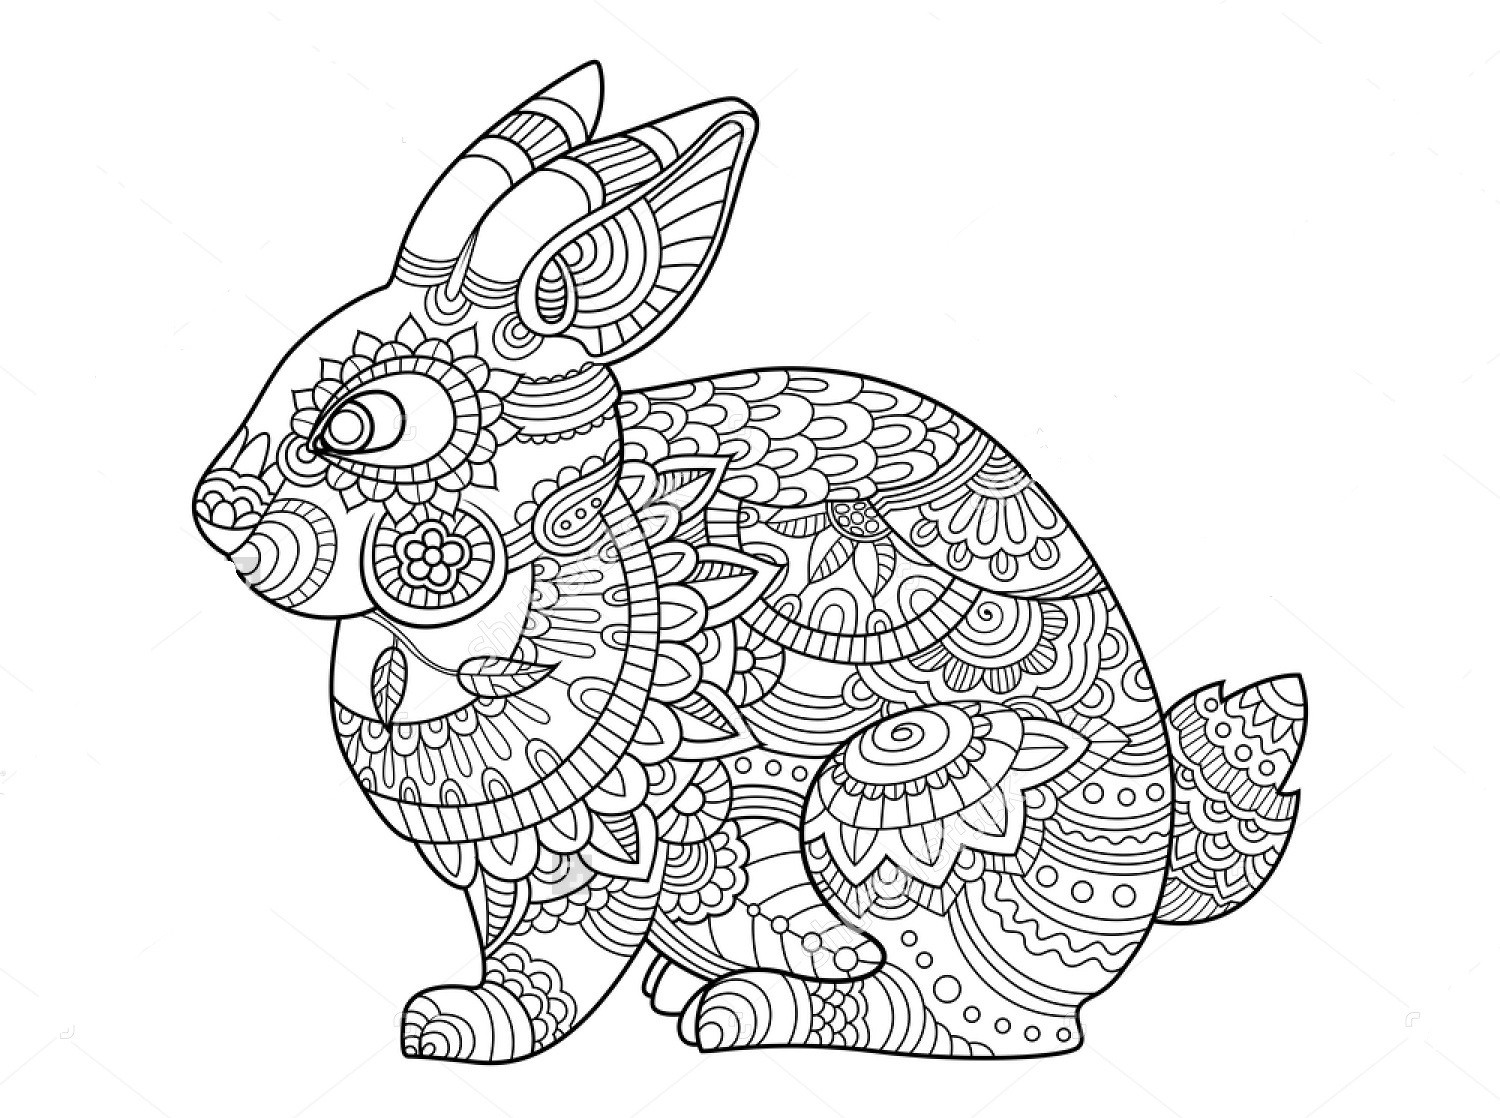 Best ideas about Zentangle Coloring Pages For Kids . Save or Pin Zentangle Coloring Pages Animals Download Now.